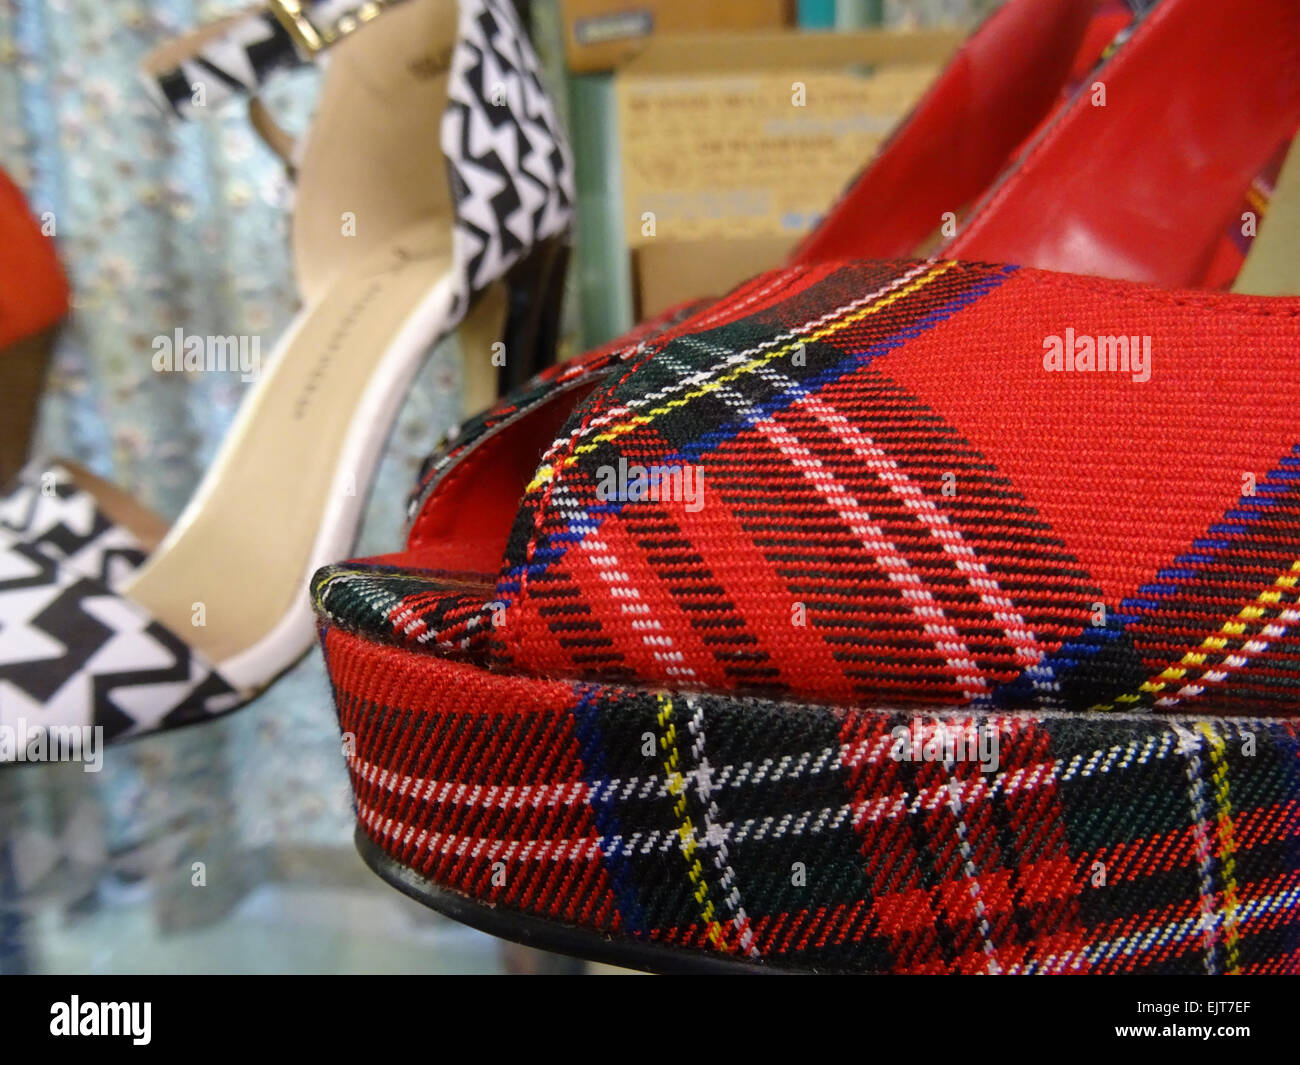 Detail of the toe of a red tartan fabric high heel shoe - Stock Image